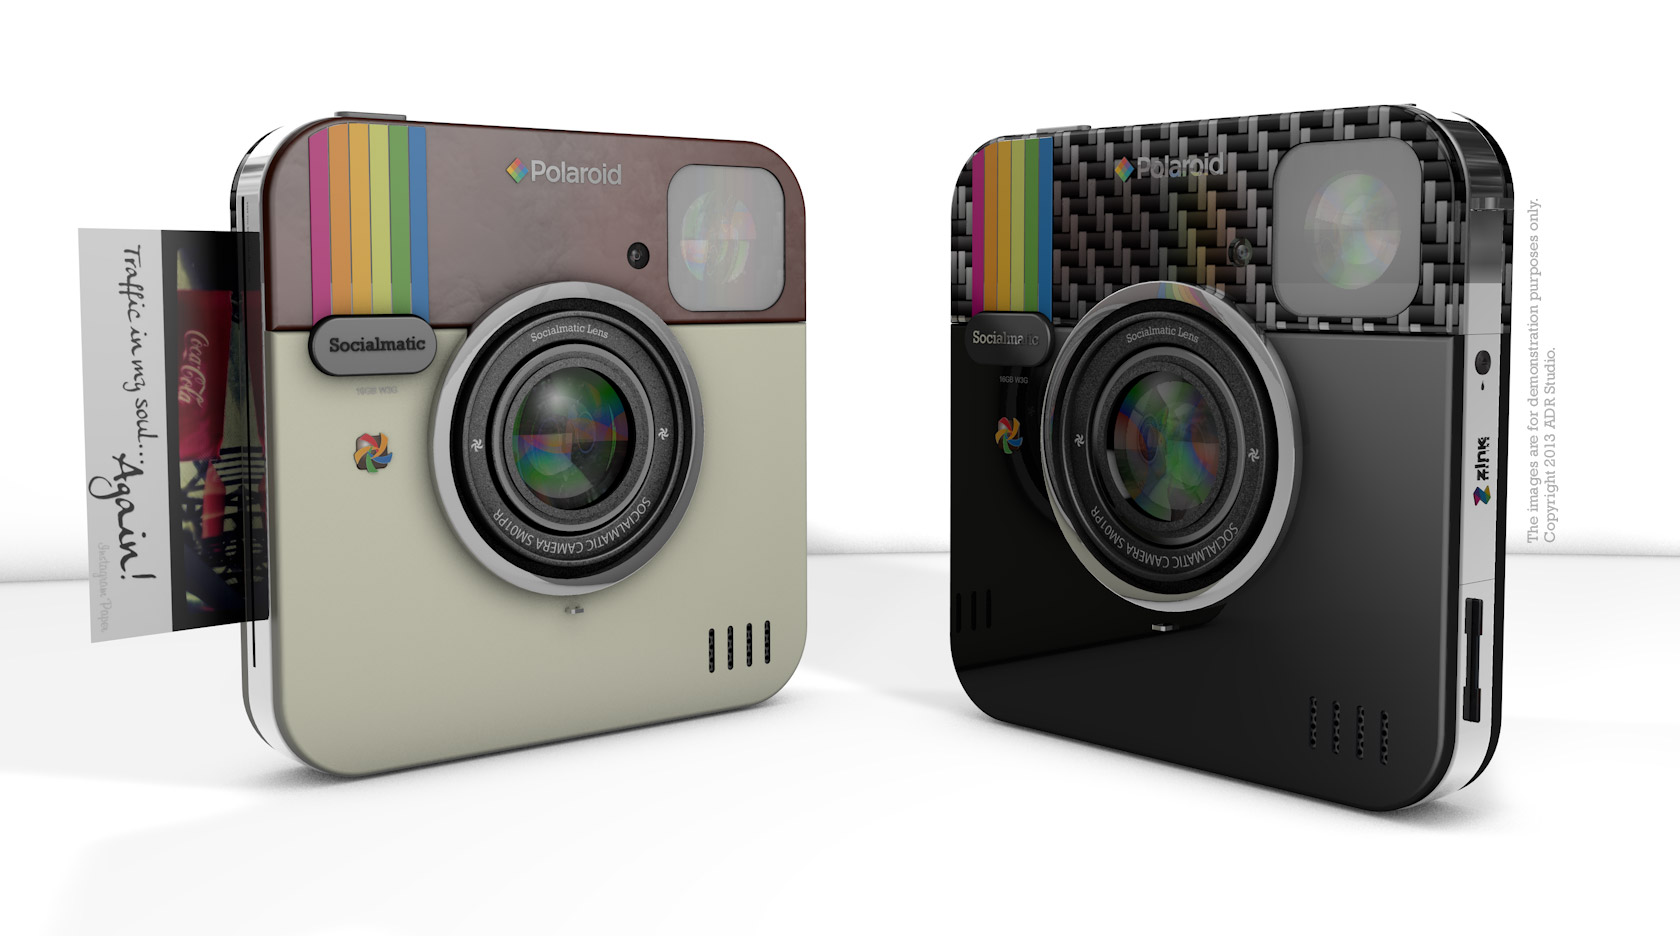 camera has announced that the camera has been picked up by polaroid